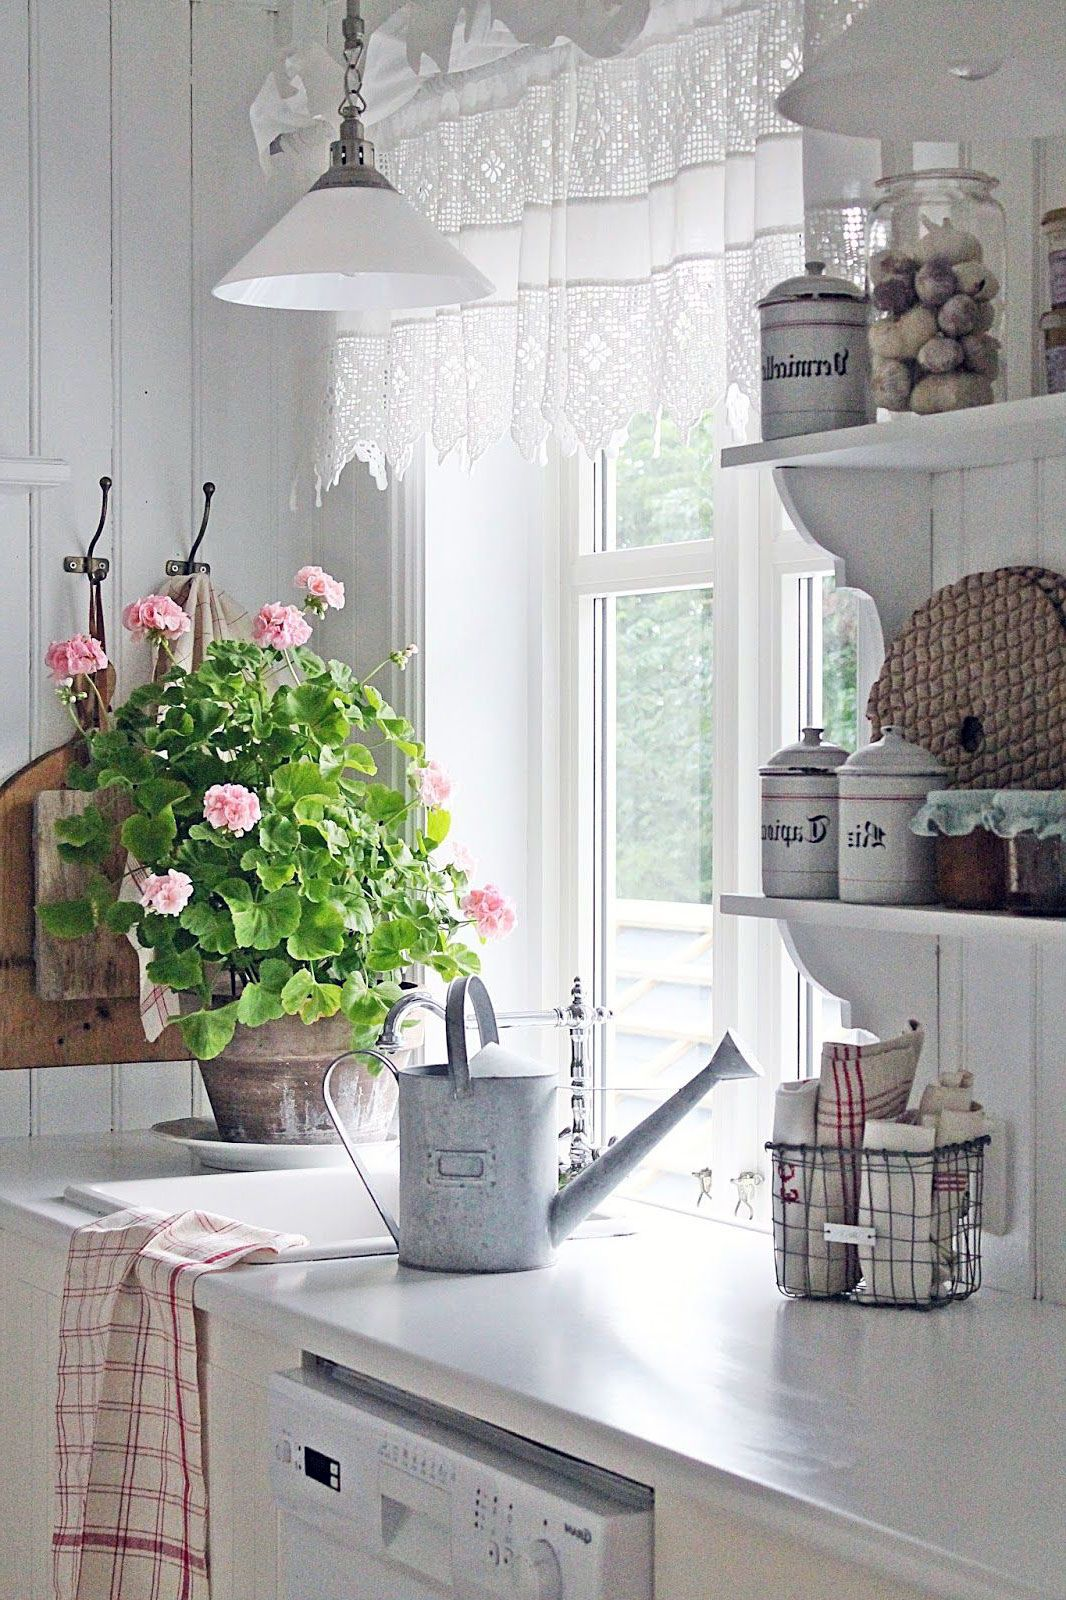 20 Adorable Scandinavian Kitchen Curtains Ideas Shabby Chic Kitchen Traditional Living Room Furniture Chic Kitchen